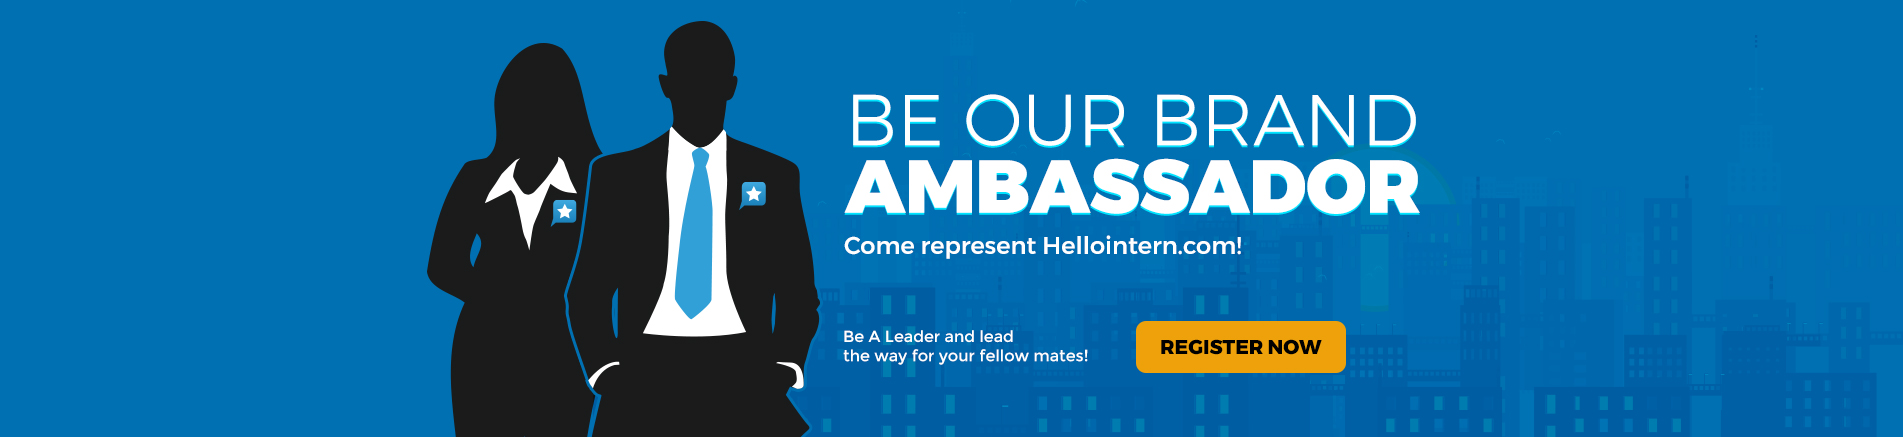 Be Our Brand Ambassador | Hellointern